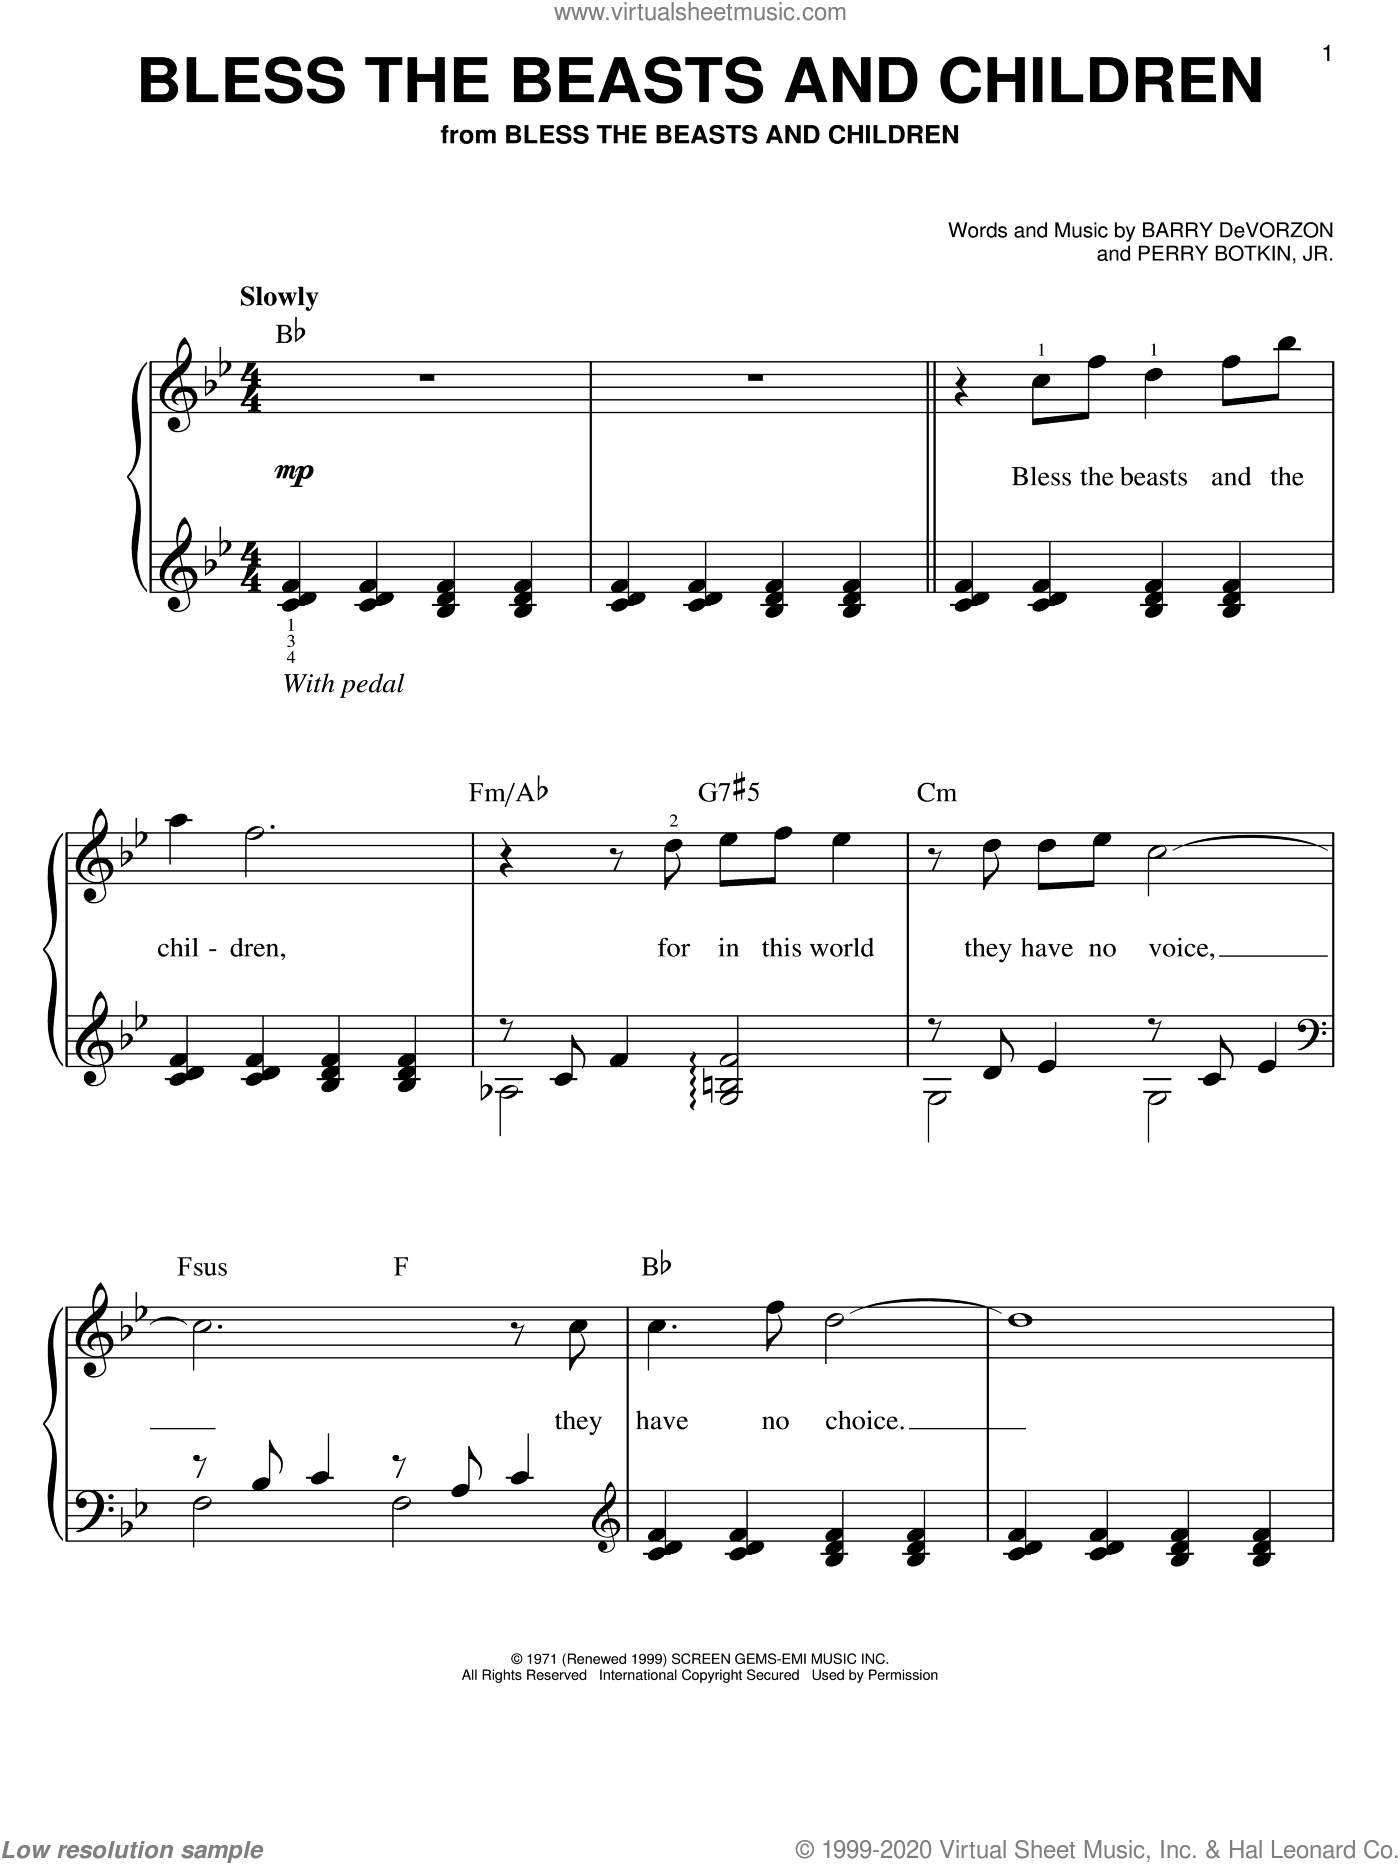 Bless The Beasts And Children sheet music for piano solo by Carpenters, Barry DeVorzon and Perry Botkin, Jr., easy skill level